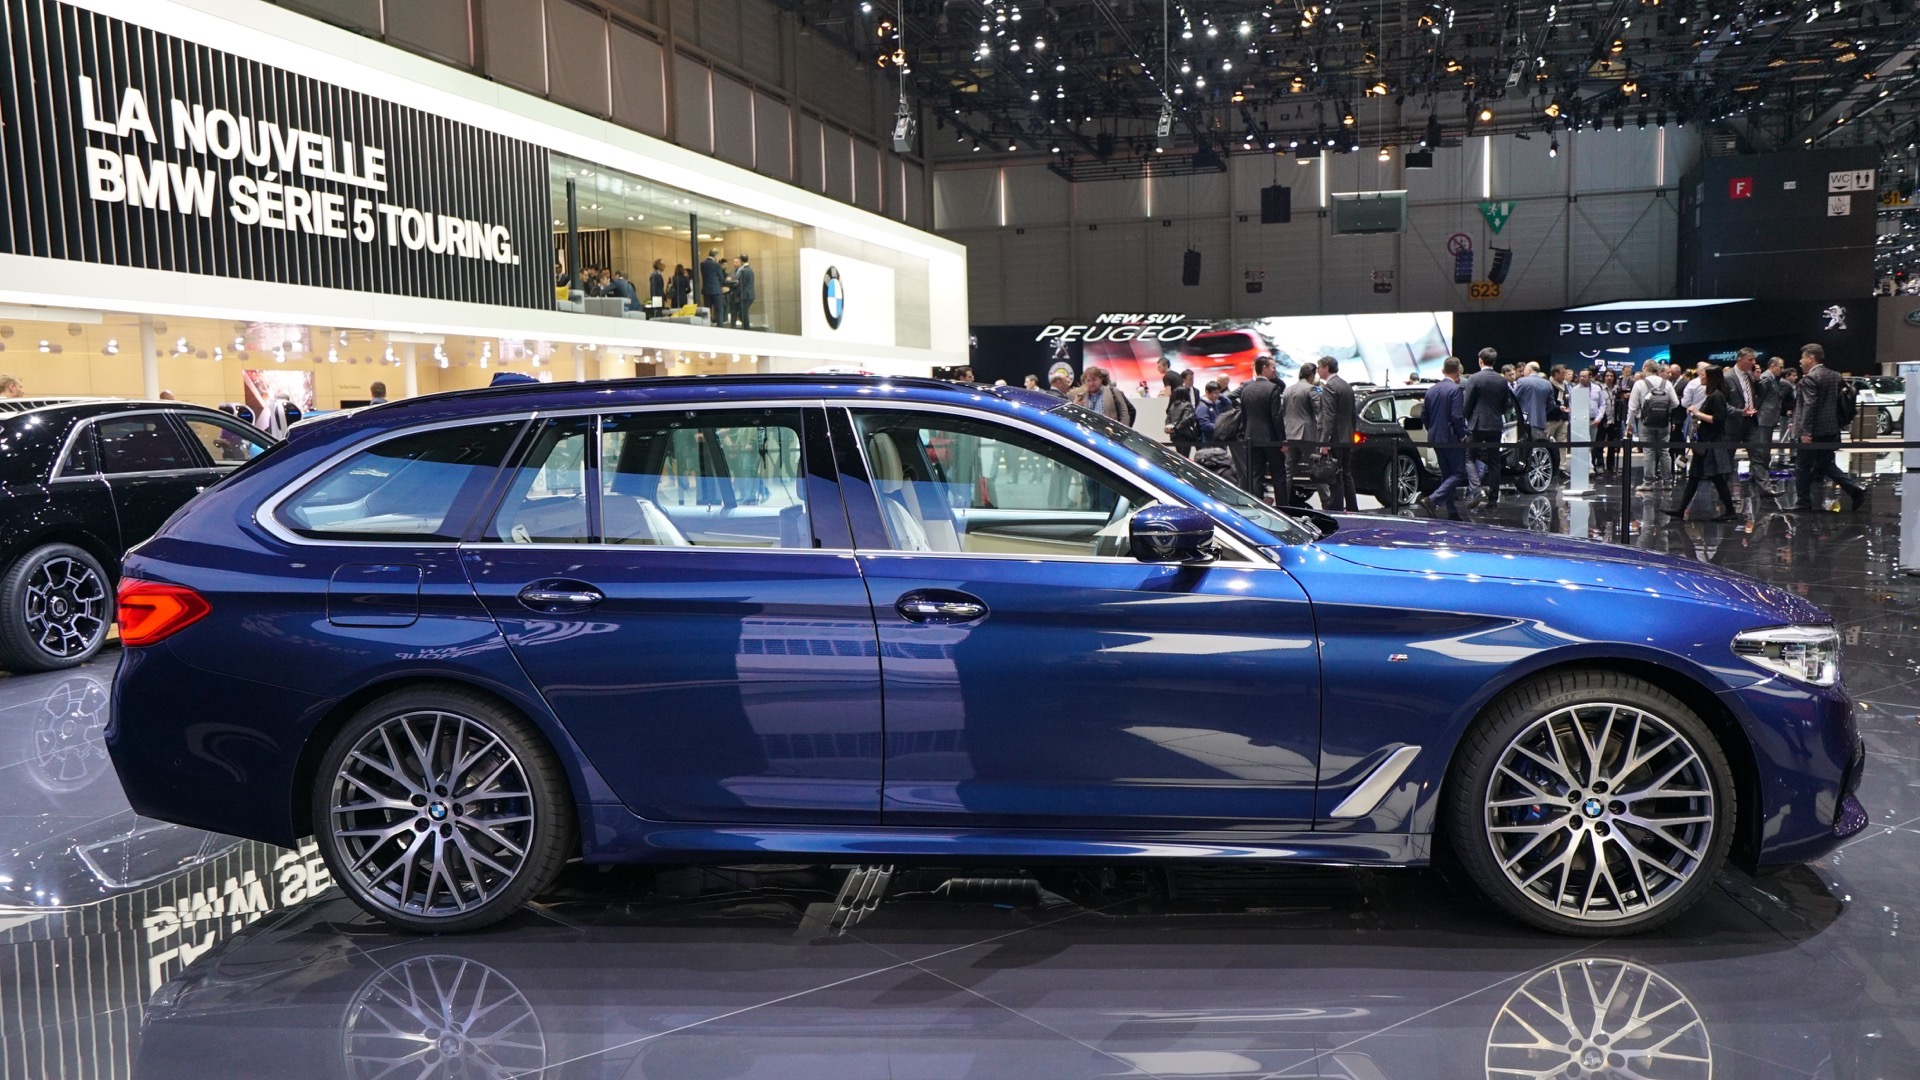 However Can You Imagine The Stunning B58 3 0 Liter I6 In A Bmw 540i Touring Sign Me Up 5 Series Touring5 120x120